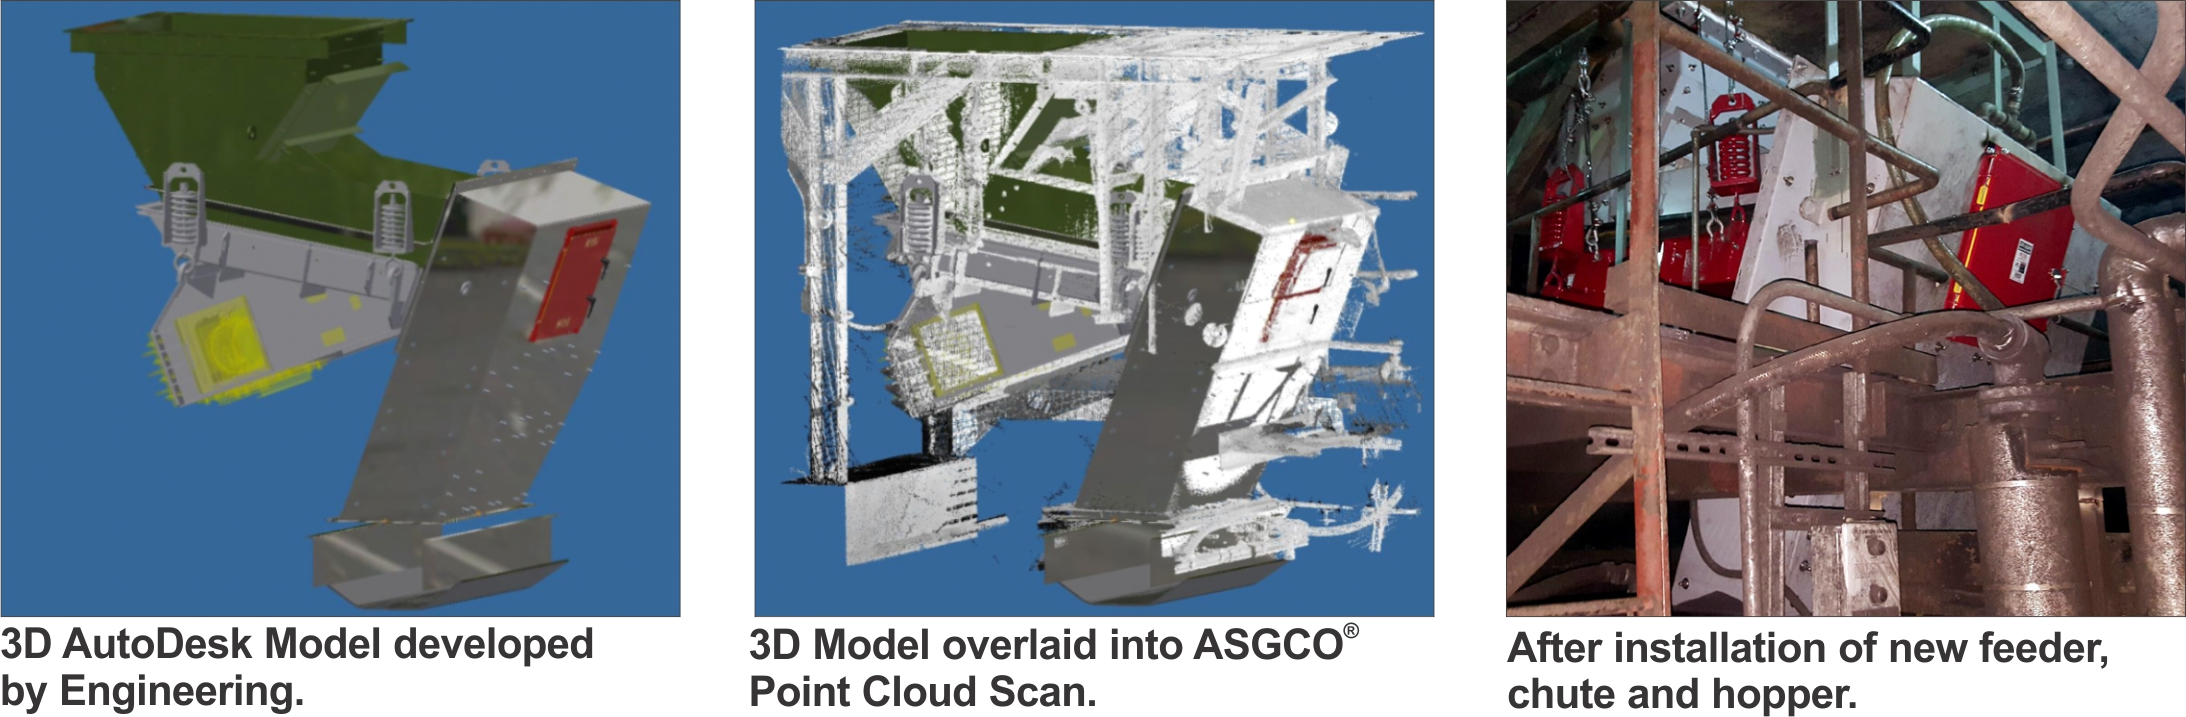 ASGCO® Engineering Design, Point Cloud Scanning Technology